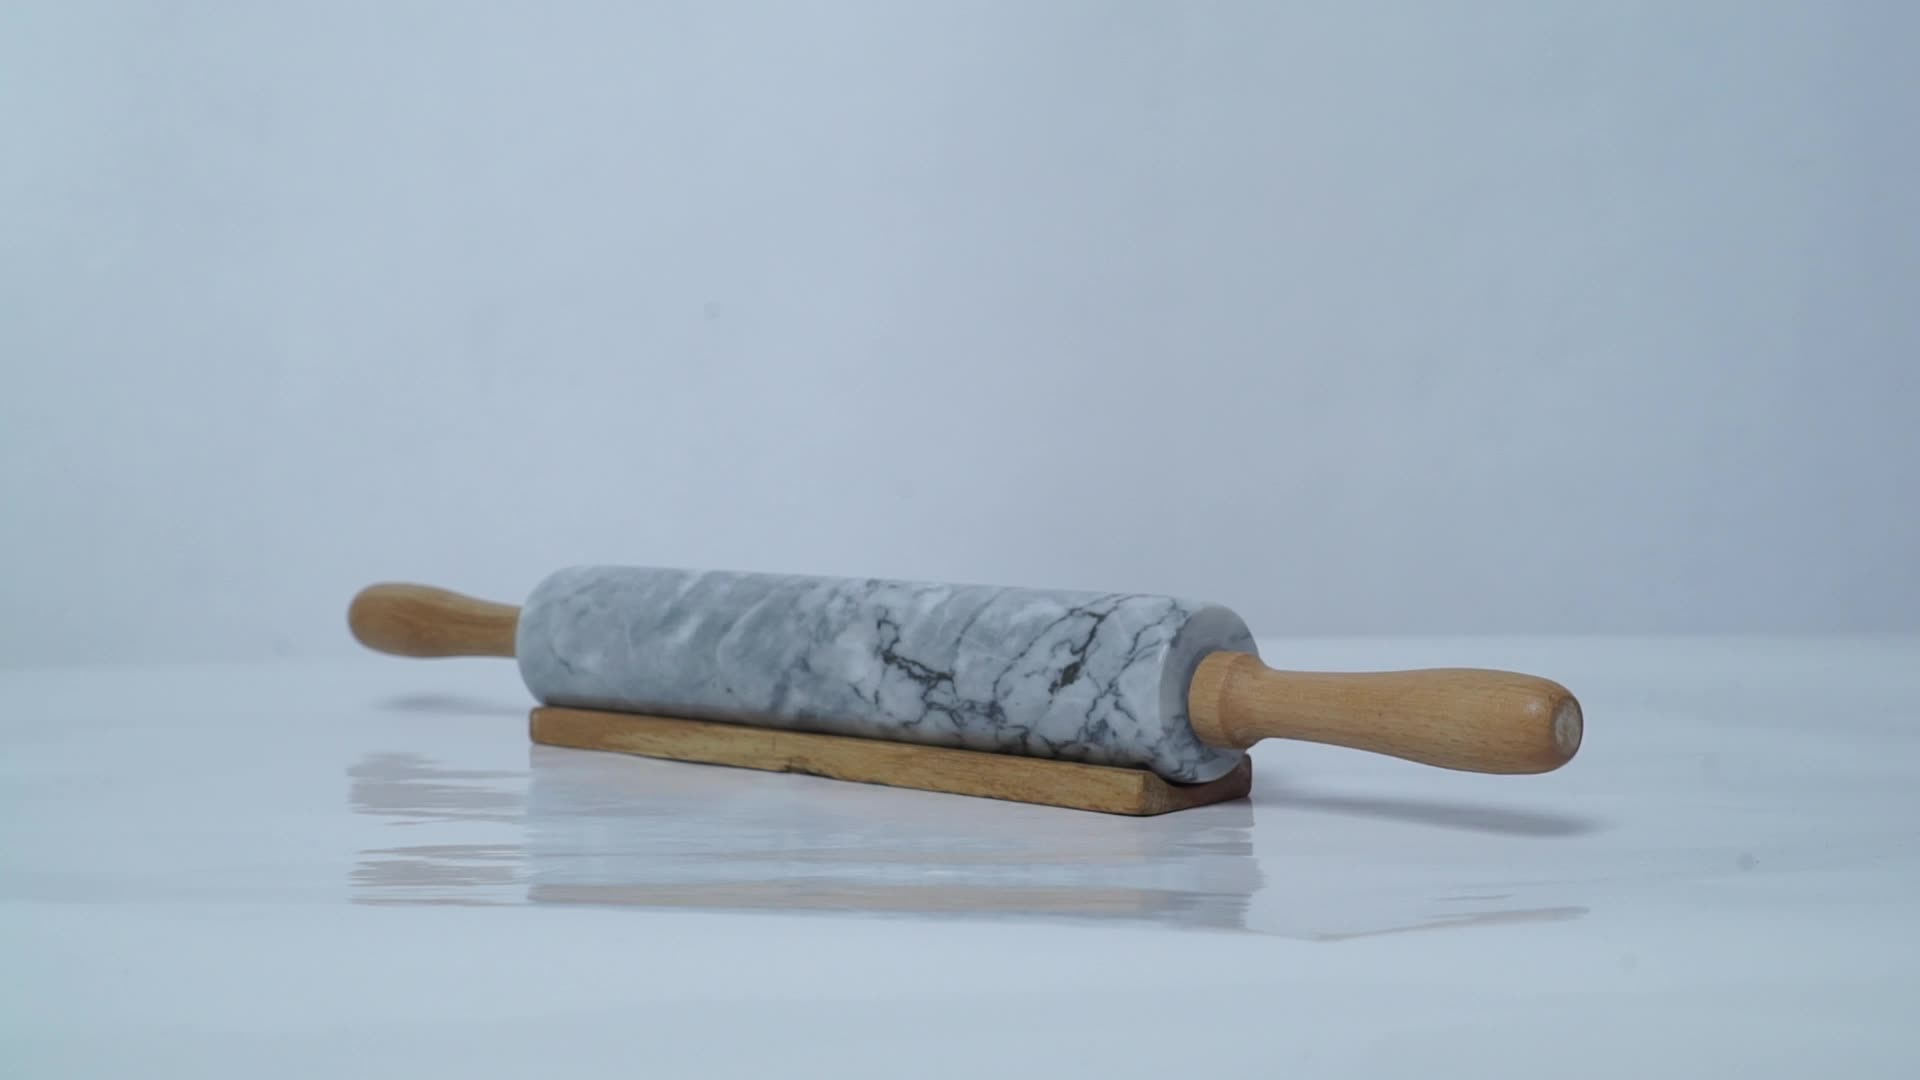 Wholesale Deluxe Dumpling Rolling Pin White Marble Stone Rolling Pin teigroller aus marmor with Wood Handle for Baking